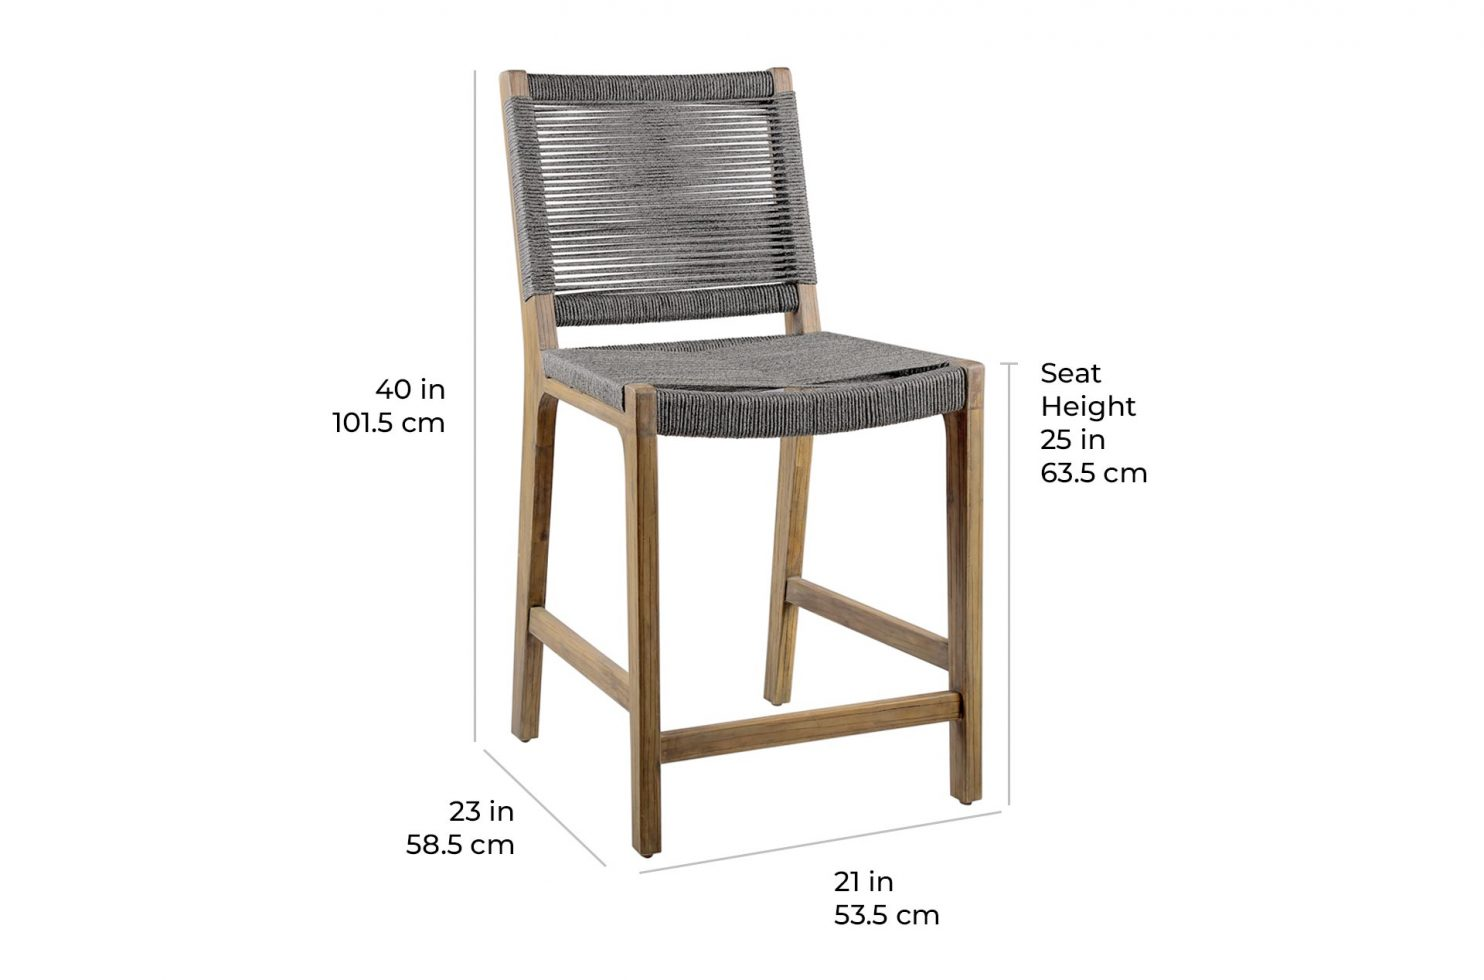 oceans counter chair 504FT411P2G E scale dims